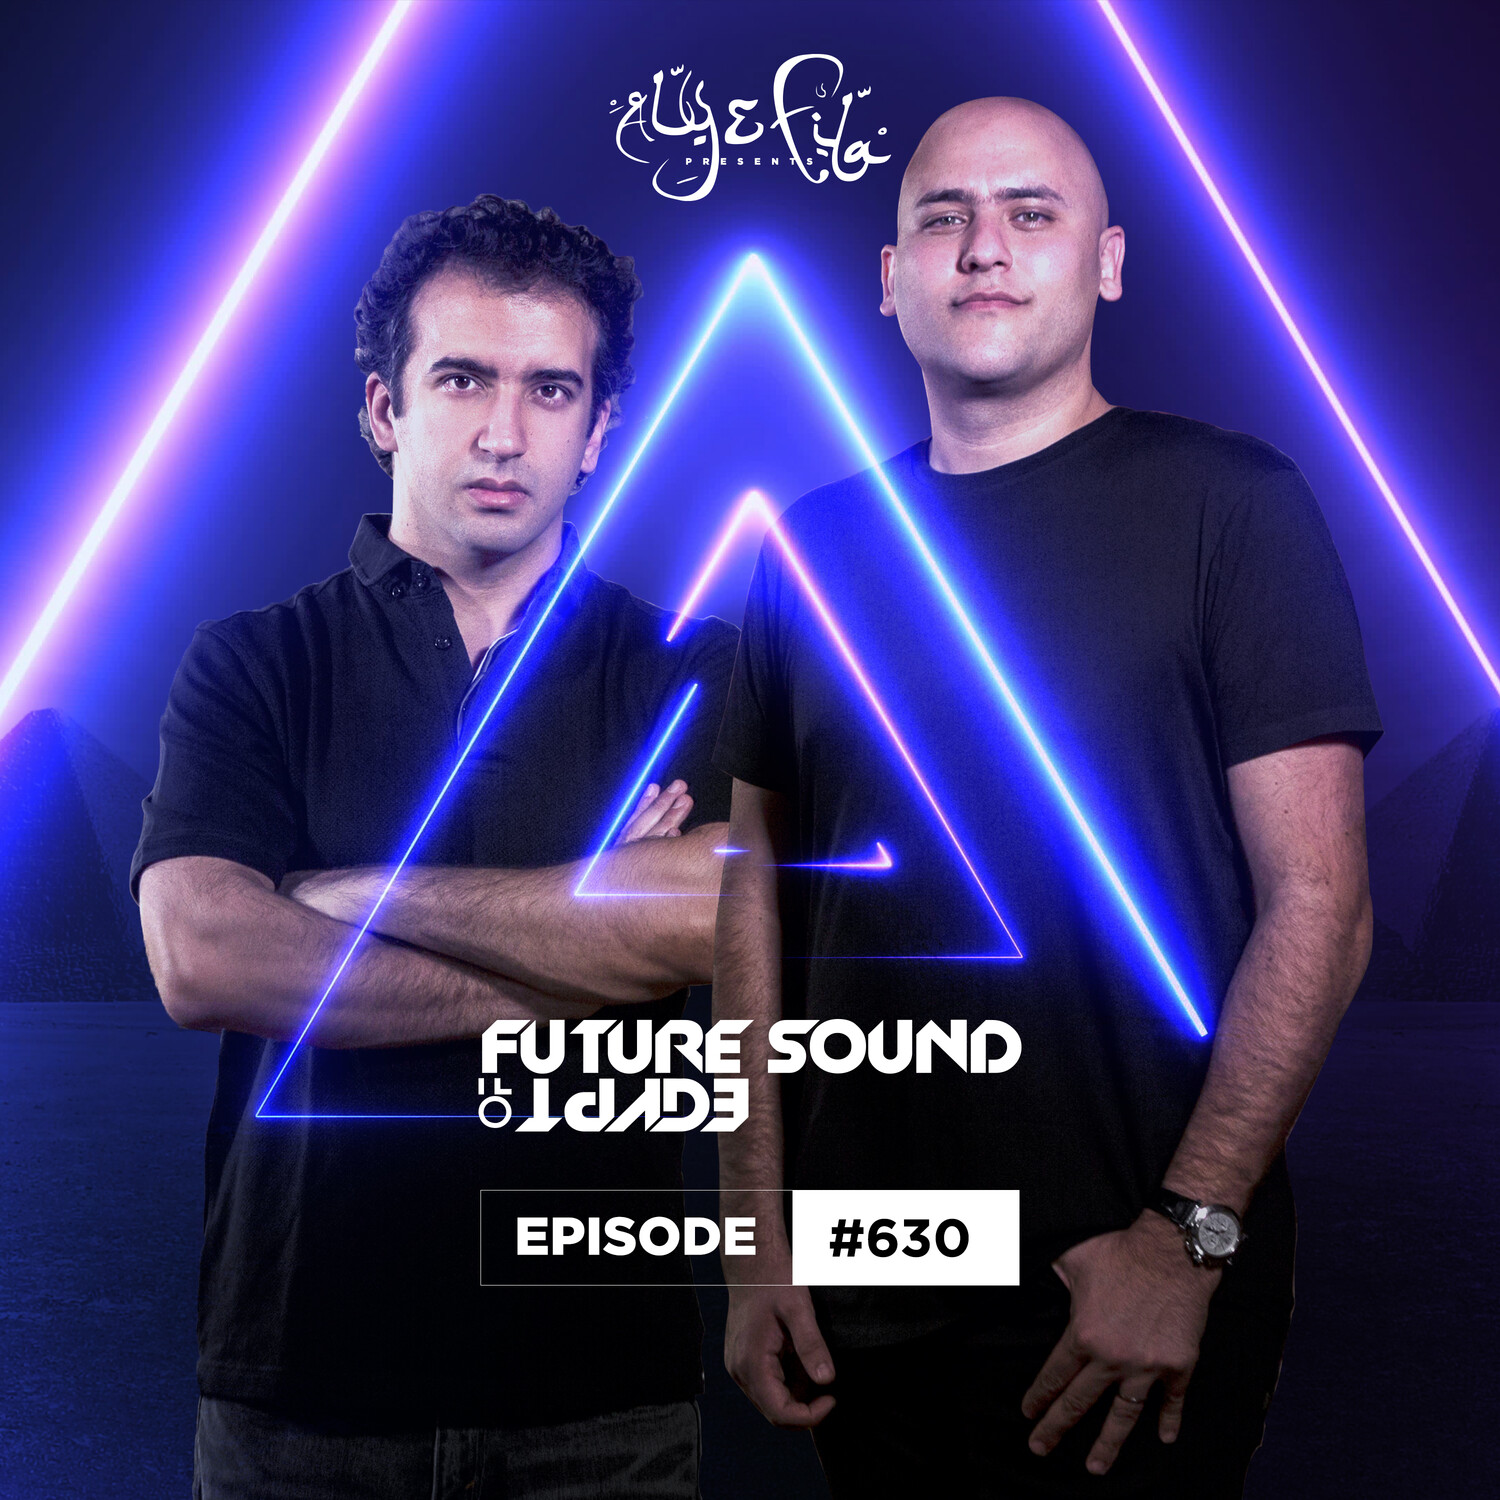 Aly & Fila — Future Sound of Egypt #630(Live from D! Club Lausanne Aly & Fila b2b Paul Thomas)